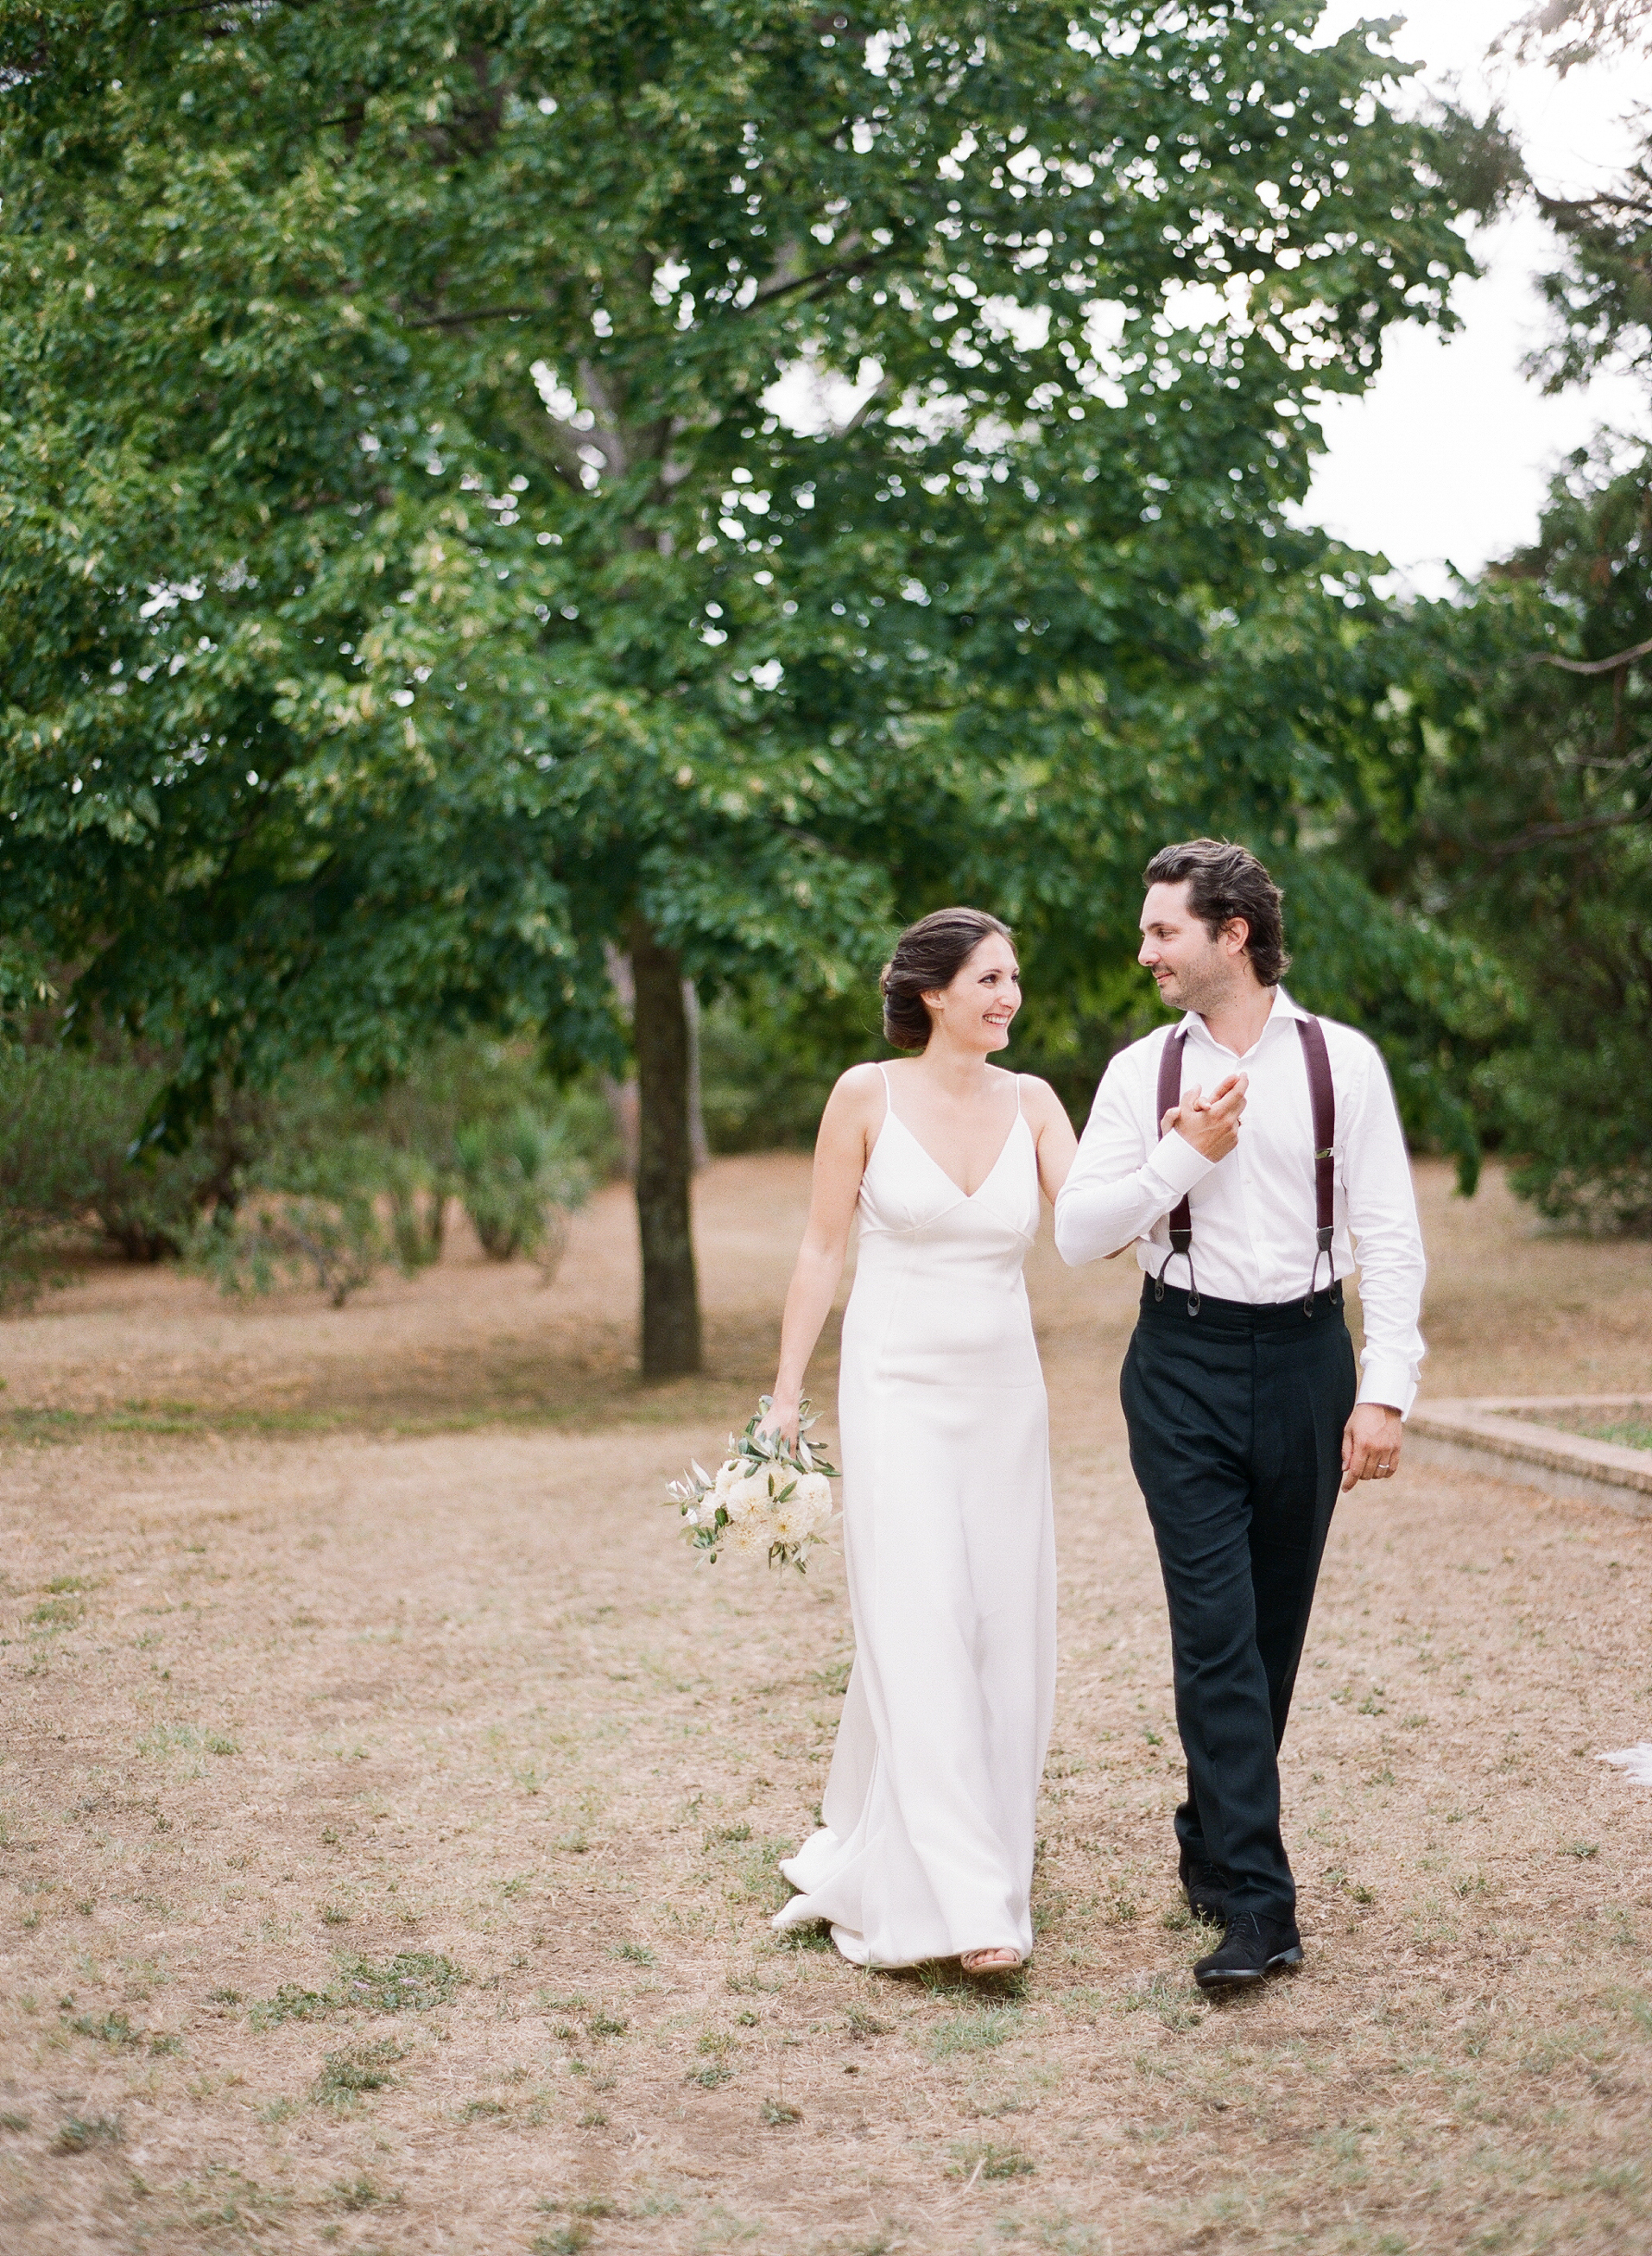 Amelie & Laurent, walk hand in hand as bride and groom, husband and wife, through the beautiful grounds of a private estate in Provence, France, after their wedding ceremony; photo by Sylvie Gil